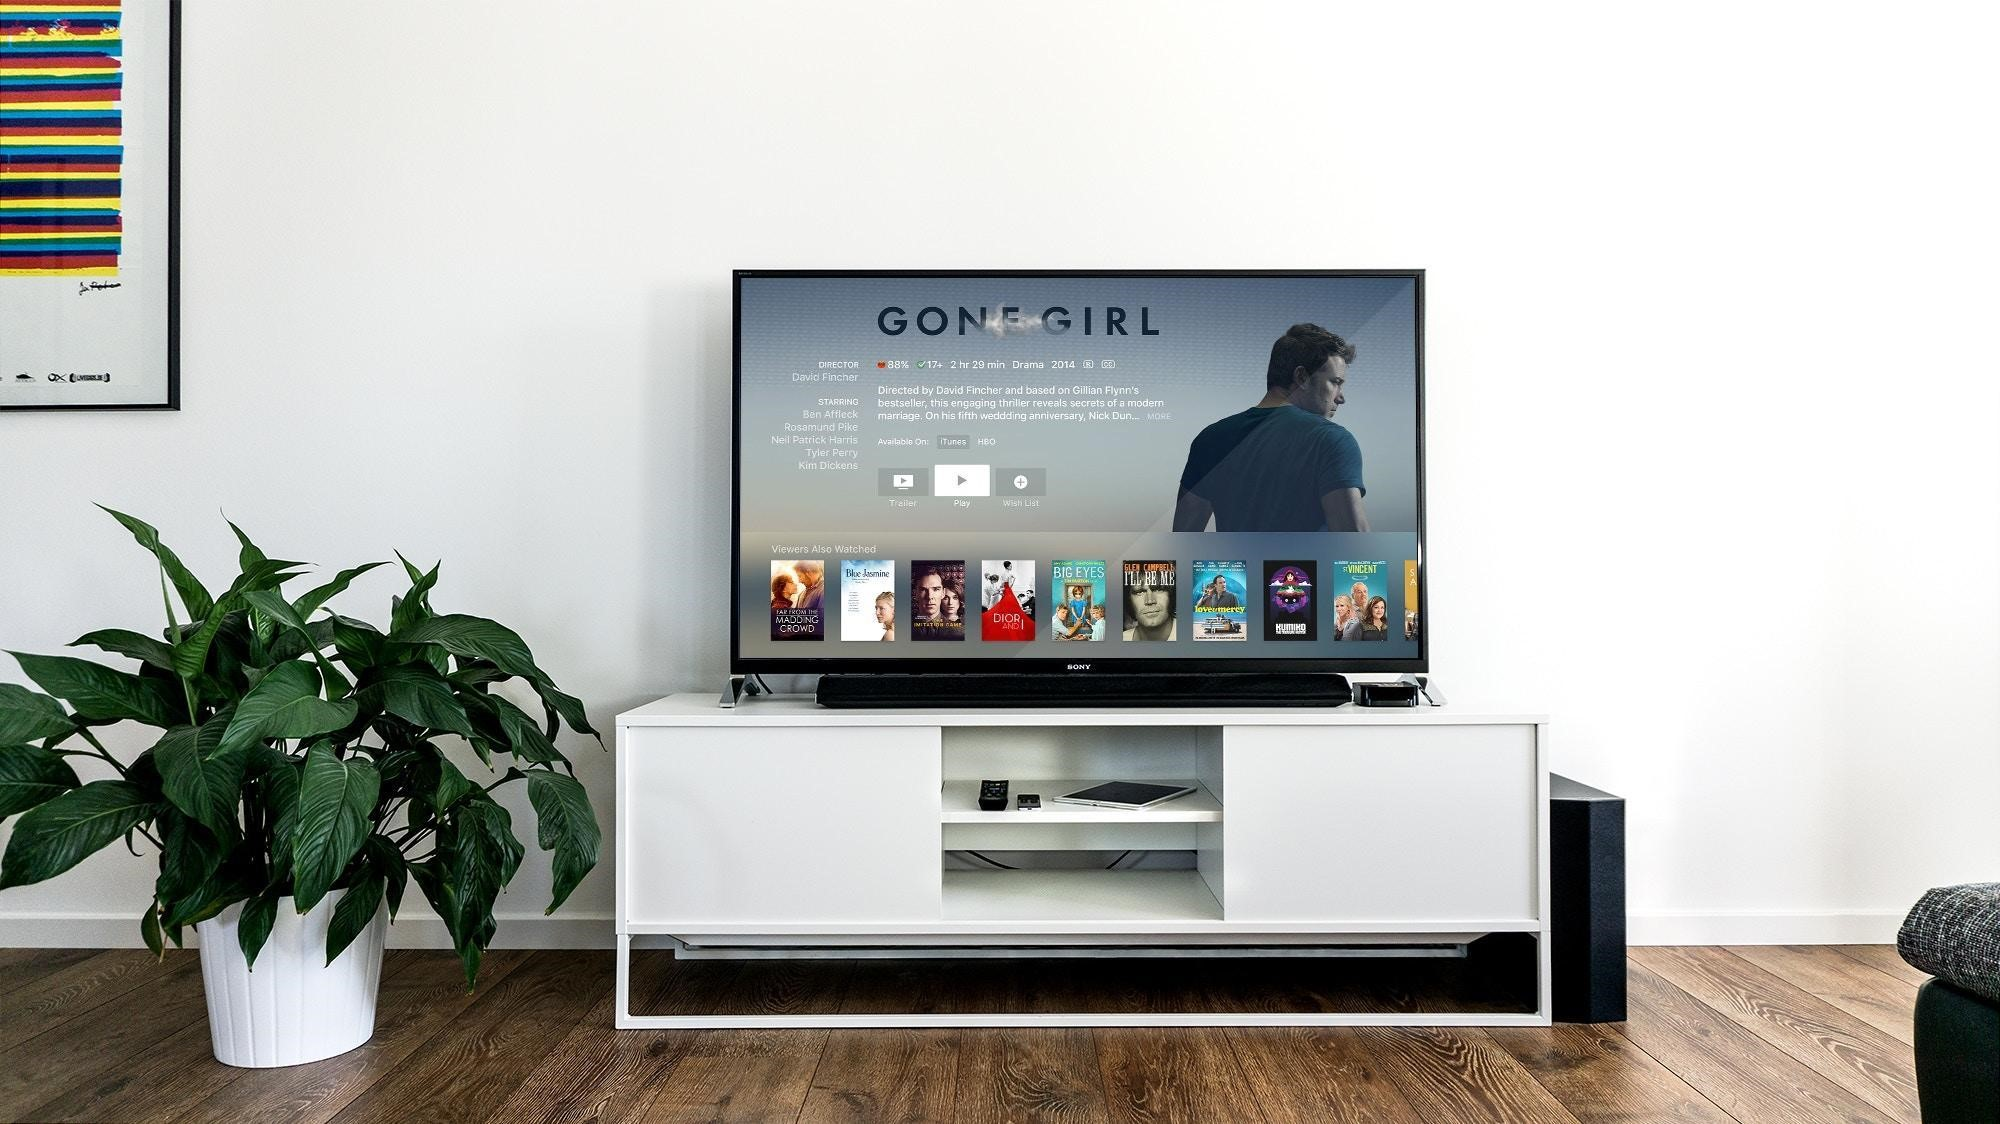 Smart TV that communicates with the Internet to provide access to dozens of entertainment apps